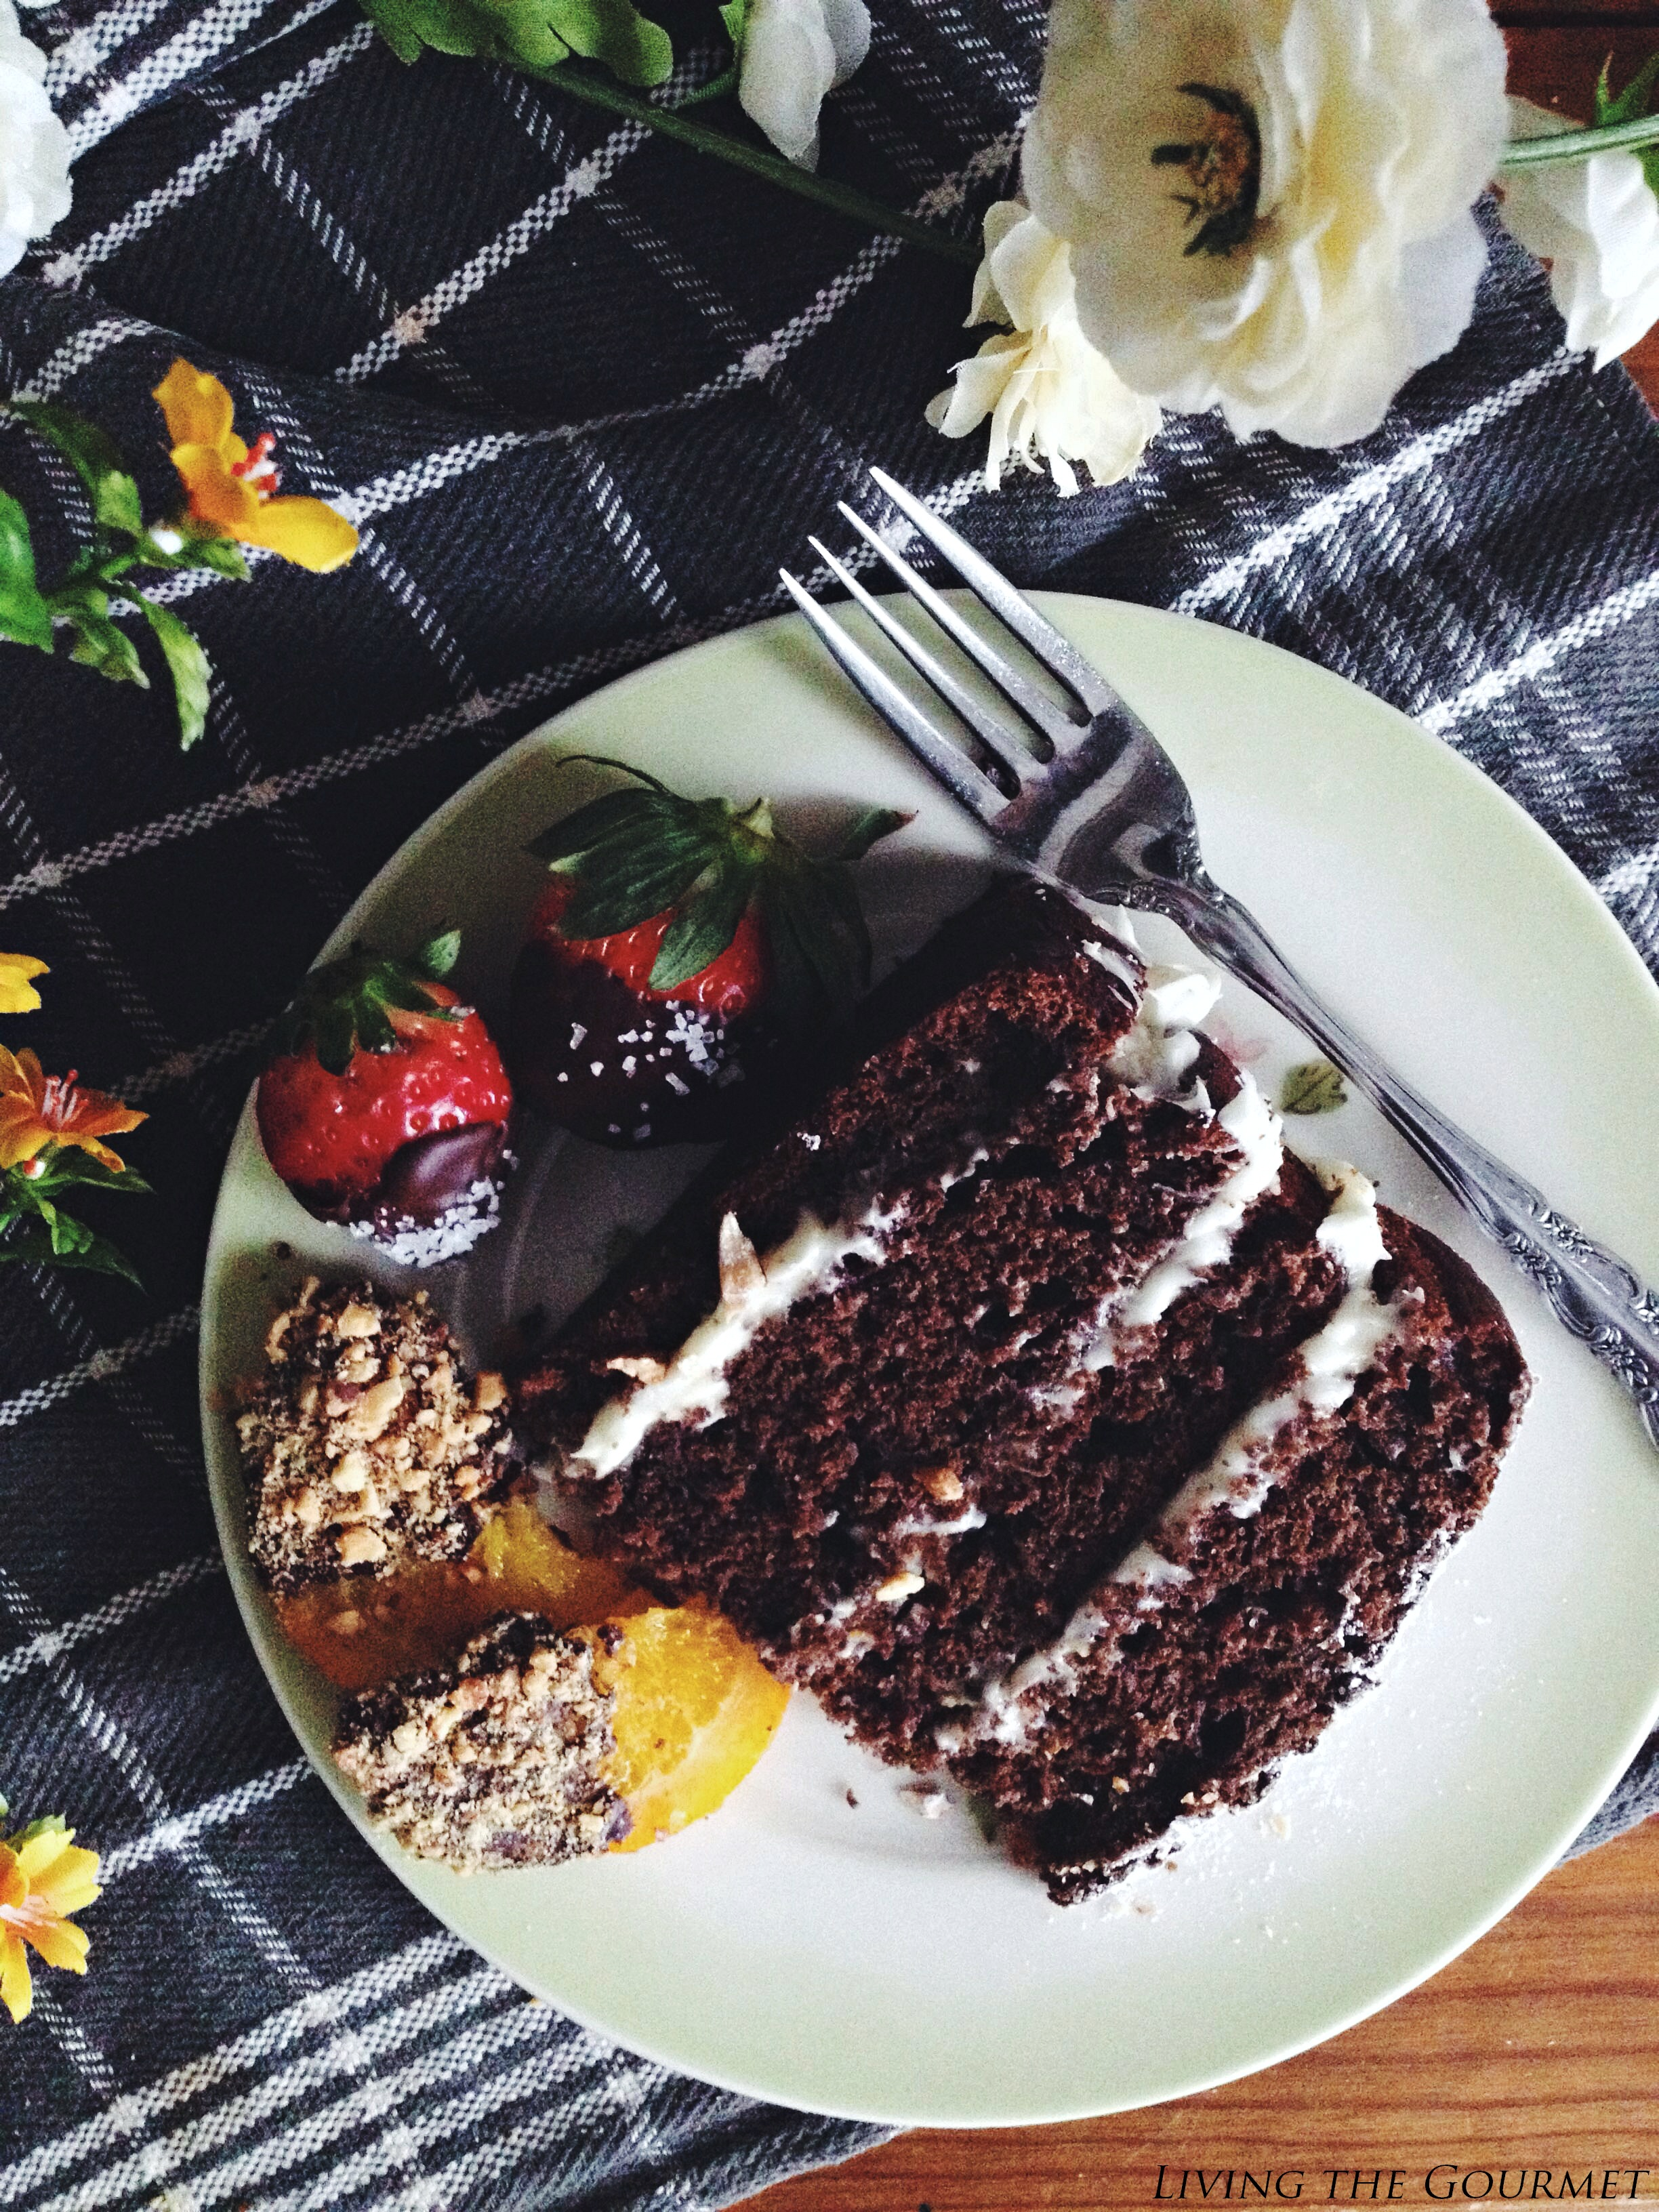 Living the Gourmet: Classic Chocolate Cake & Candied Oranges